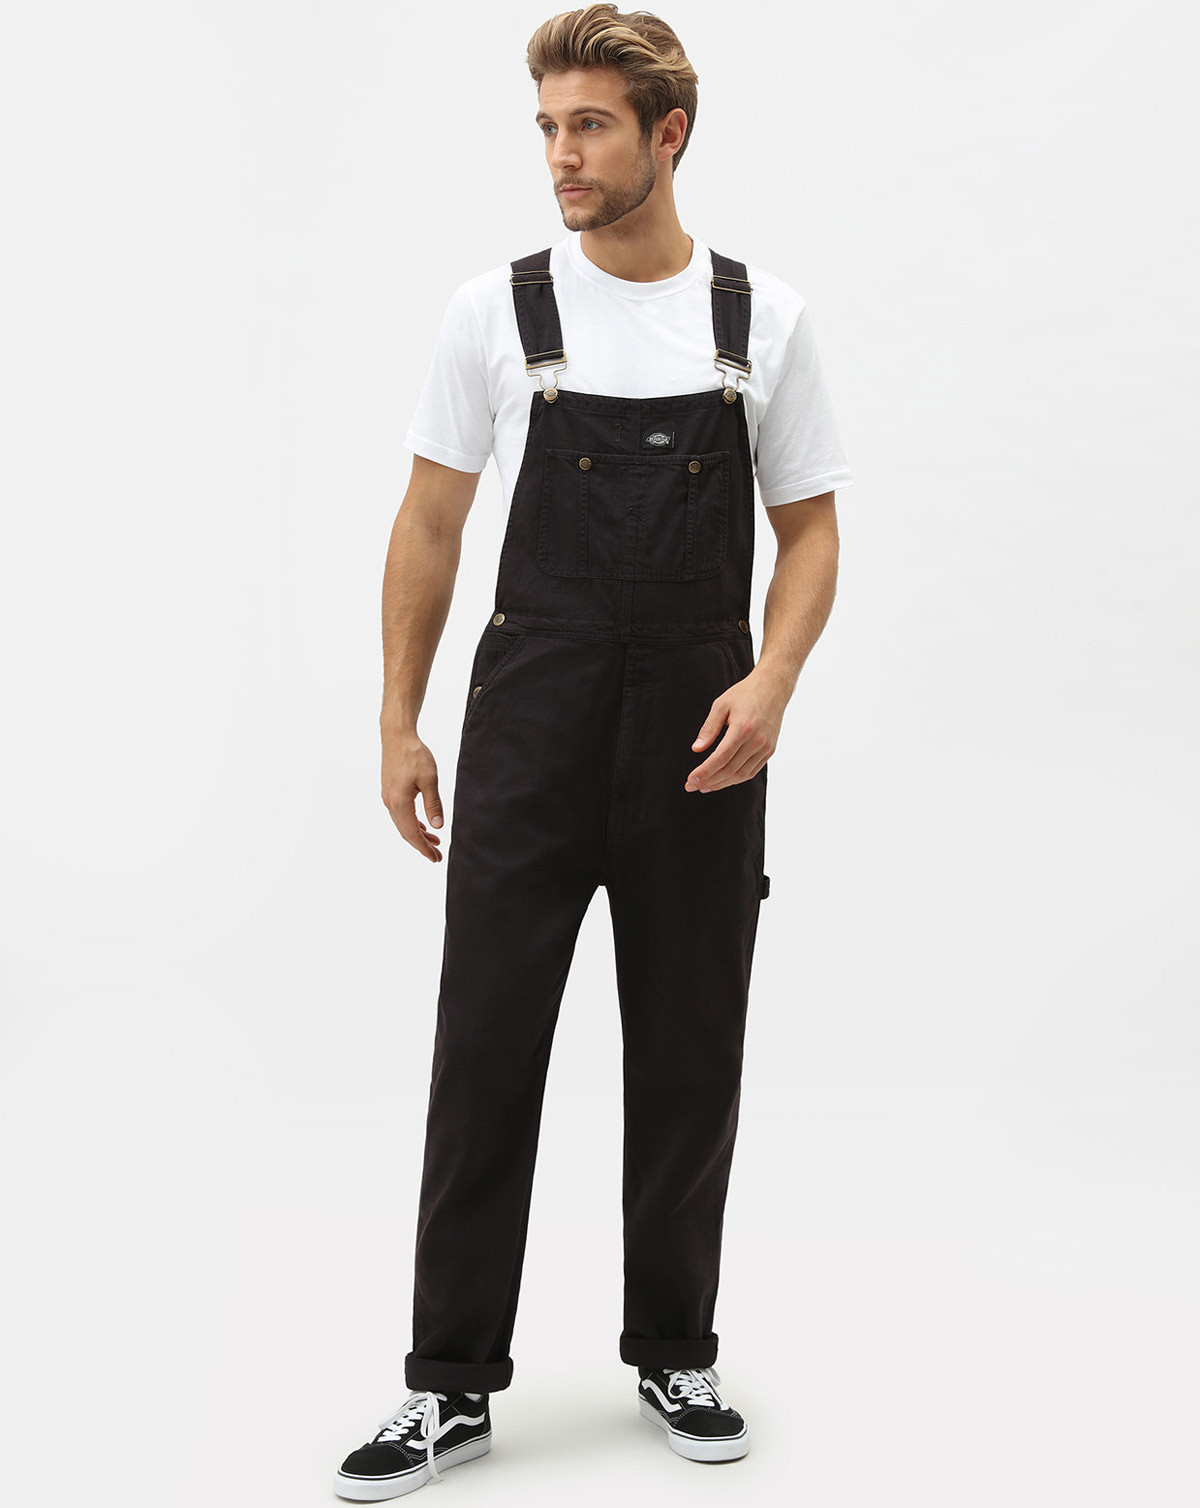 Image of   Dickies Valdosta Bib Overall (Sort, W30 / L30)